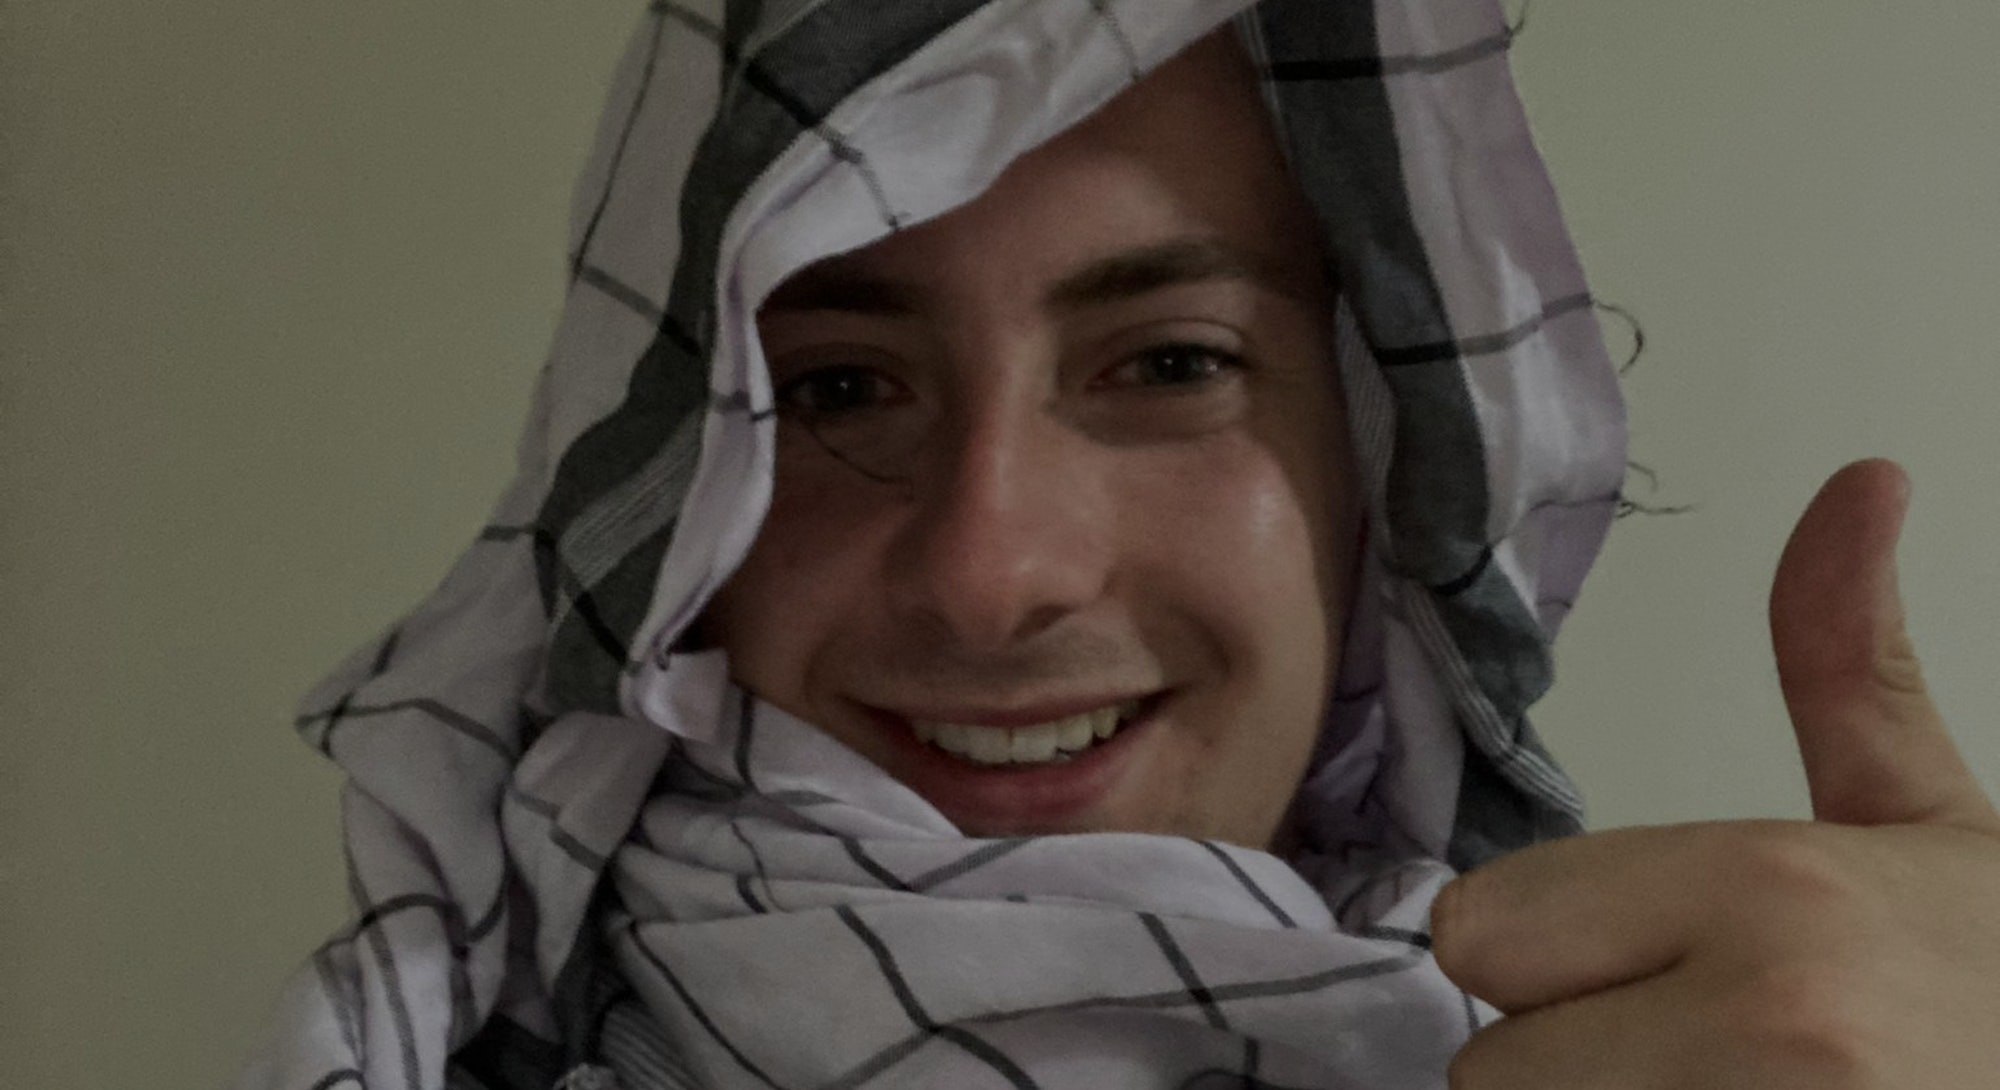 British student and 4channer Miles Routledge wearing a burqa in Afghanistan